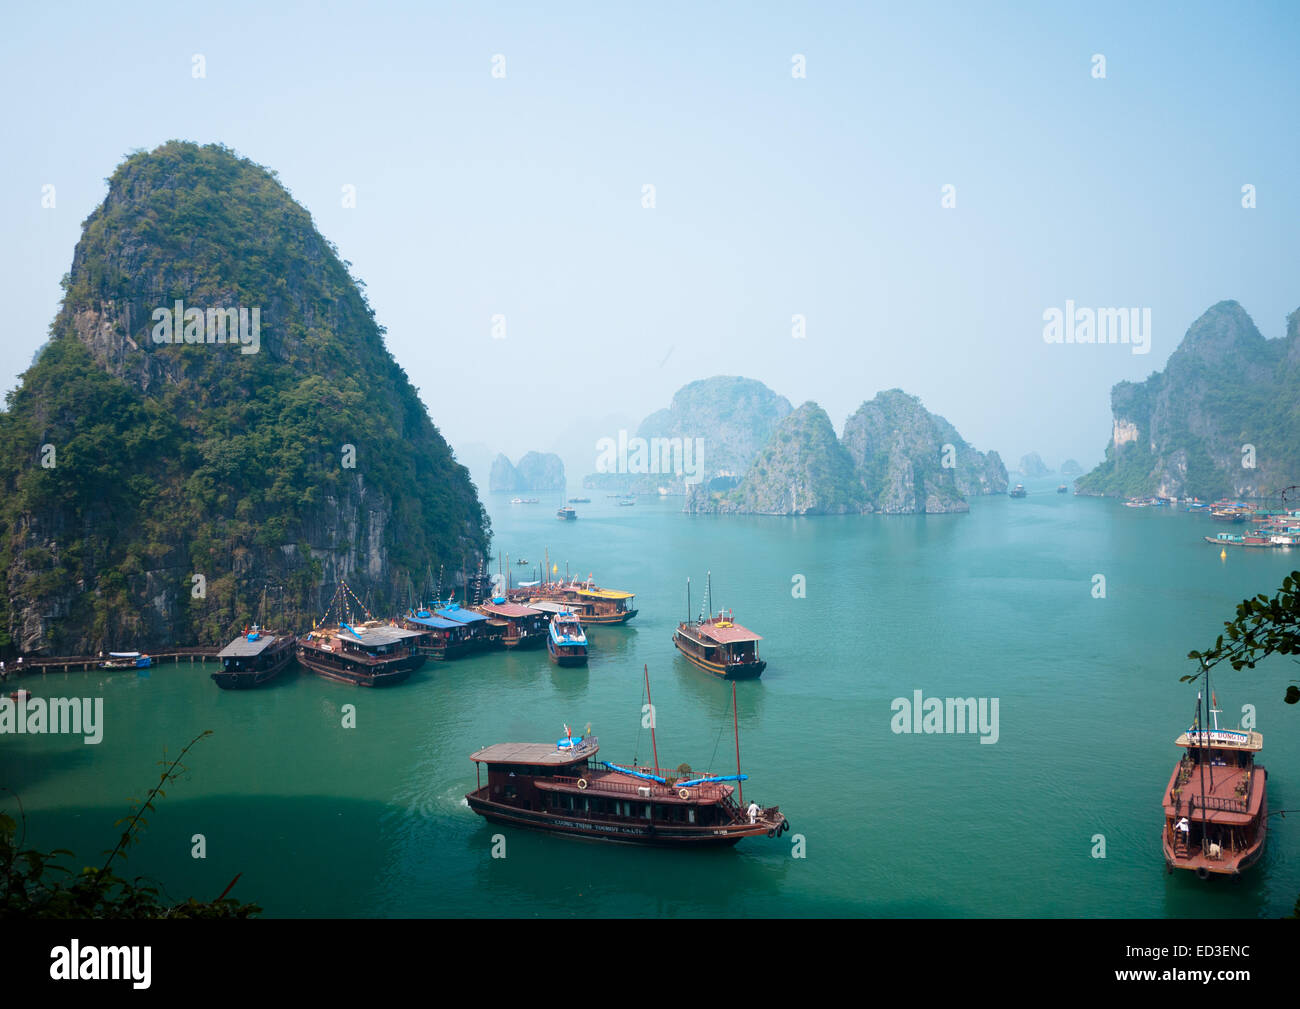 A view of the spectacular limestone karst formations rising above boats moored in Halong Bay, Vietnam. Stock Photo